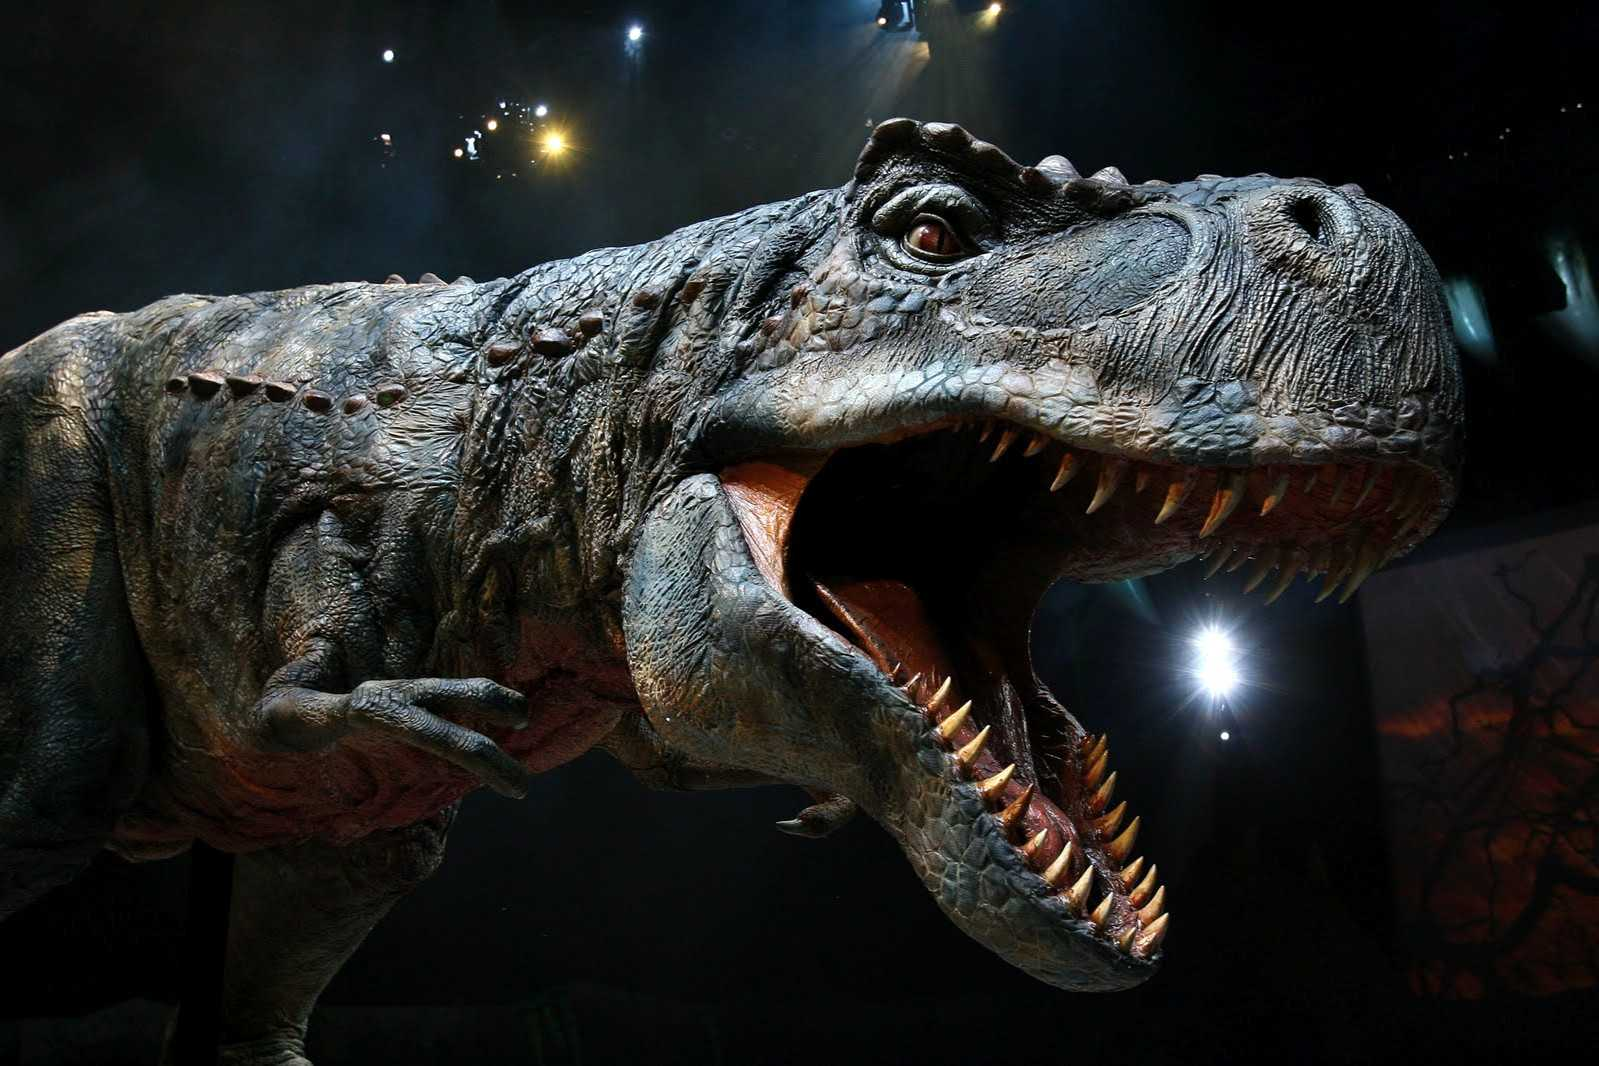 A model of gorgosaurus, who may instead be another example of albertosaurus